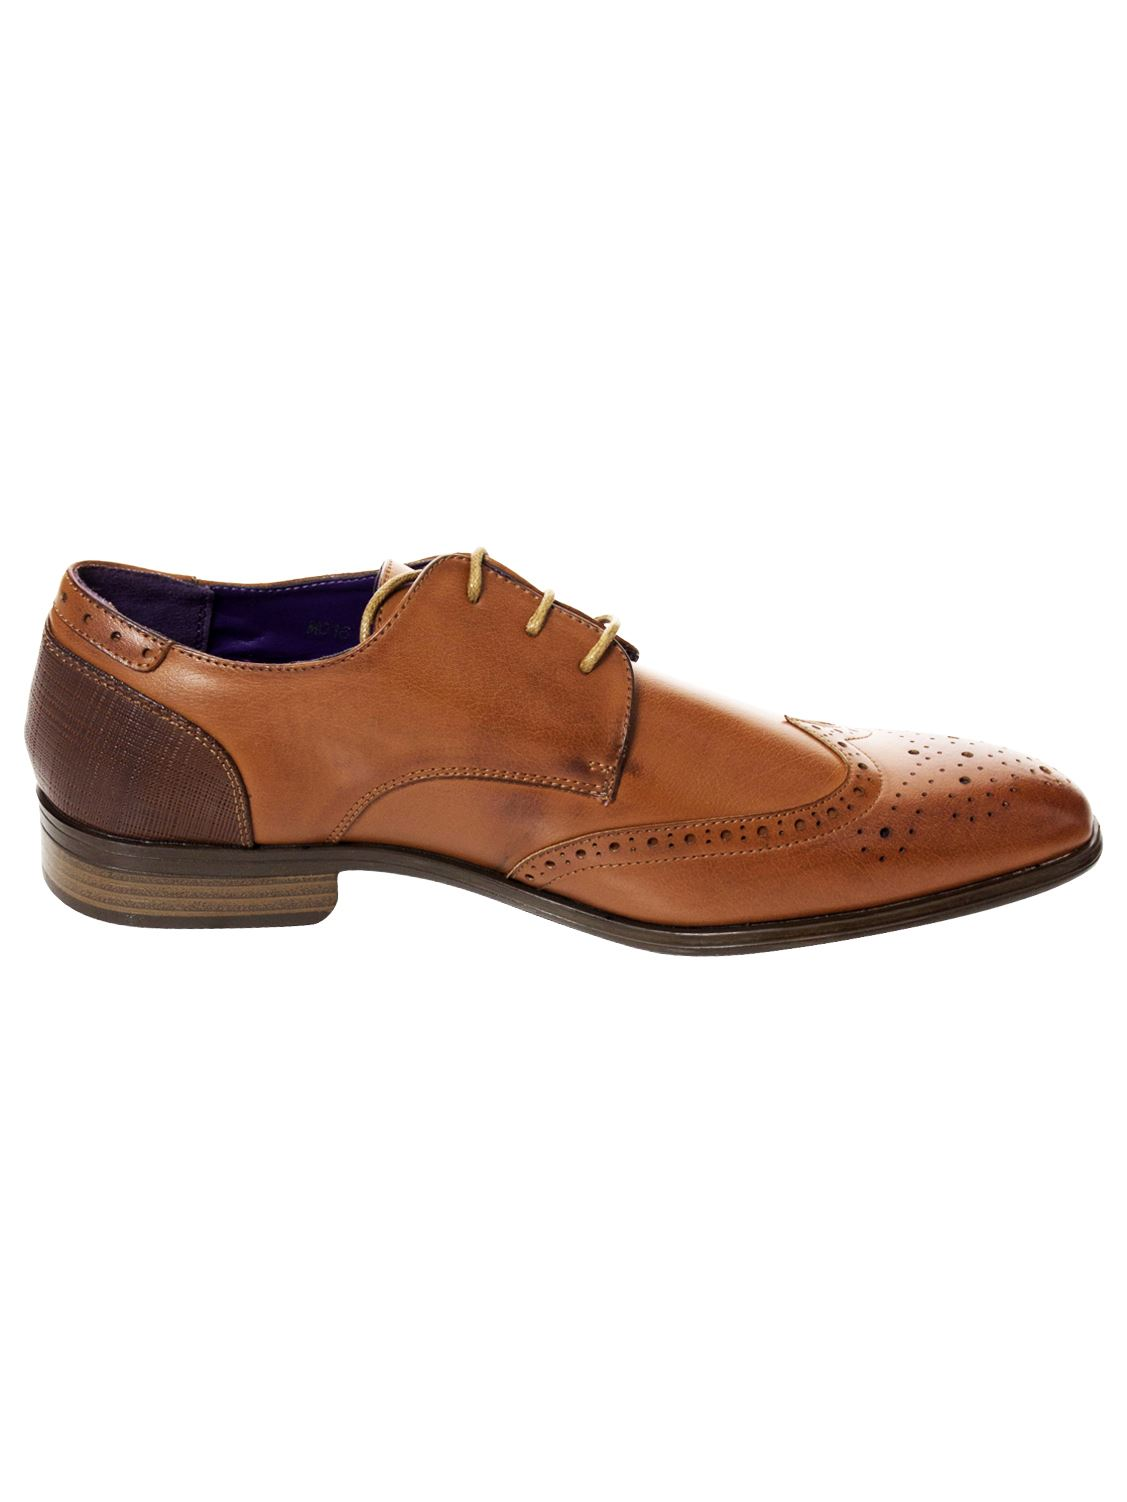 Mens-Faux-Leather-Shoes-Smart-Formal-Wedding-Office-Lace-Up-Designer-Brogues thumbnail 24